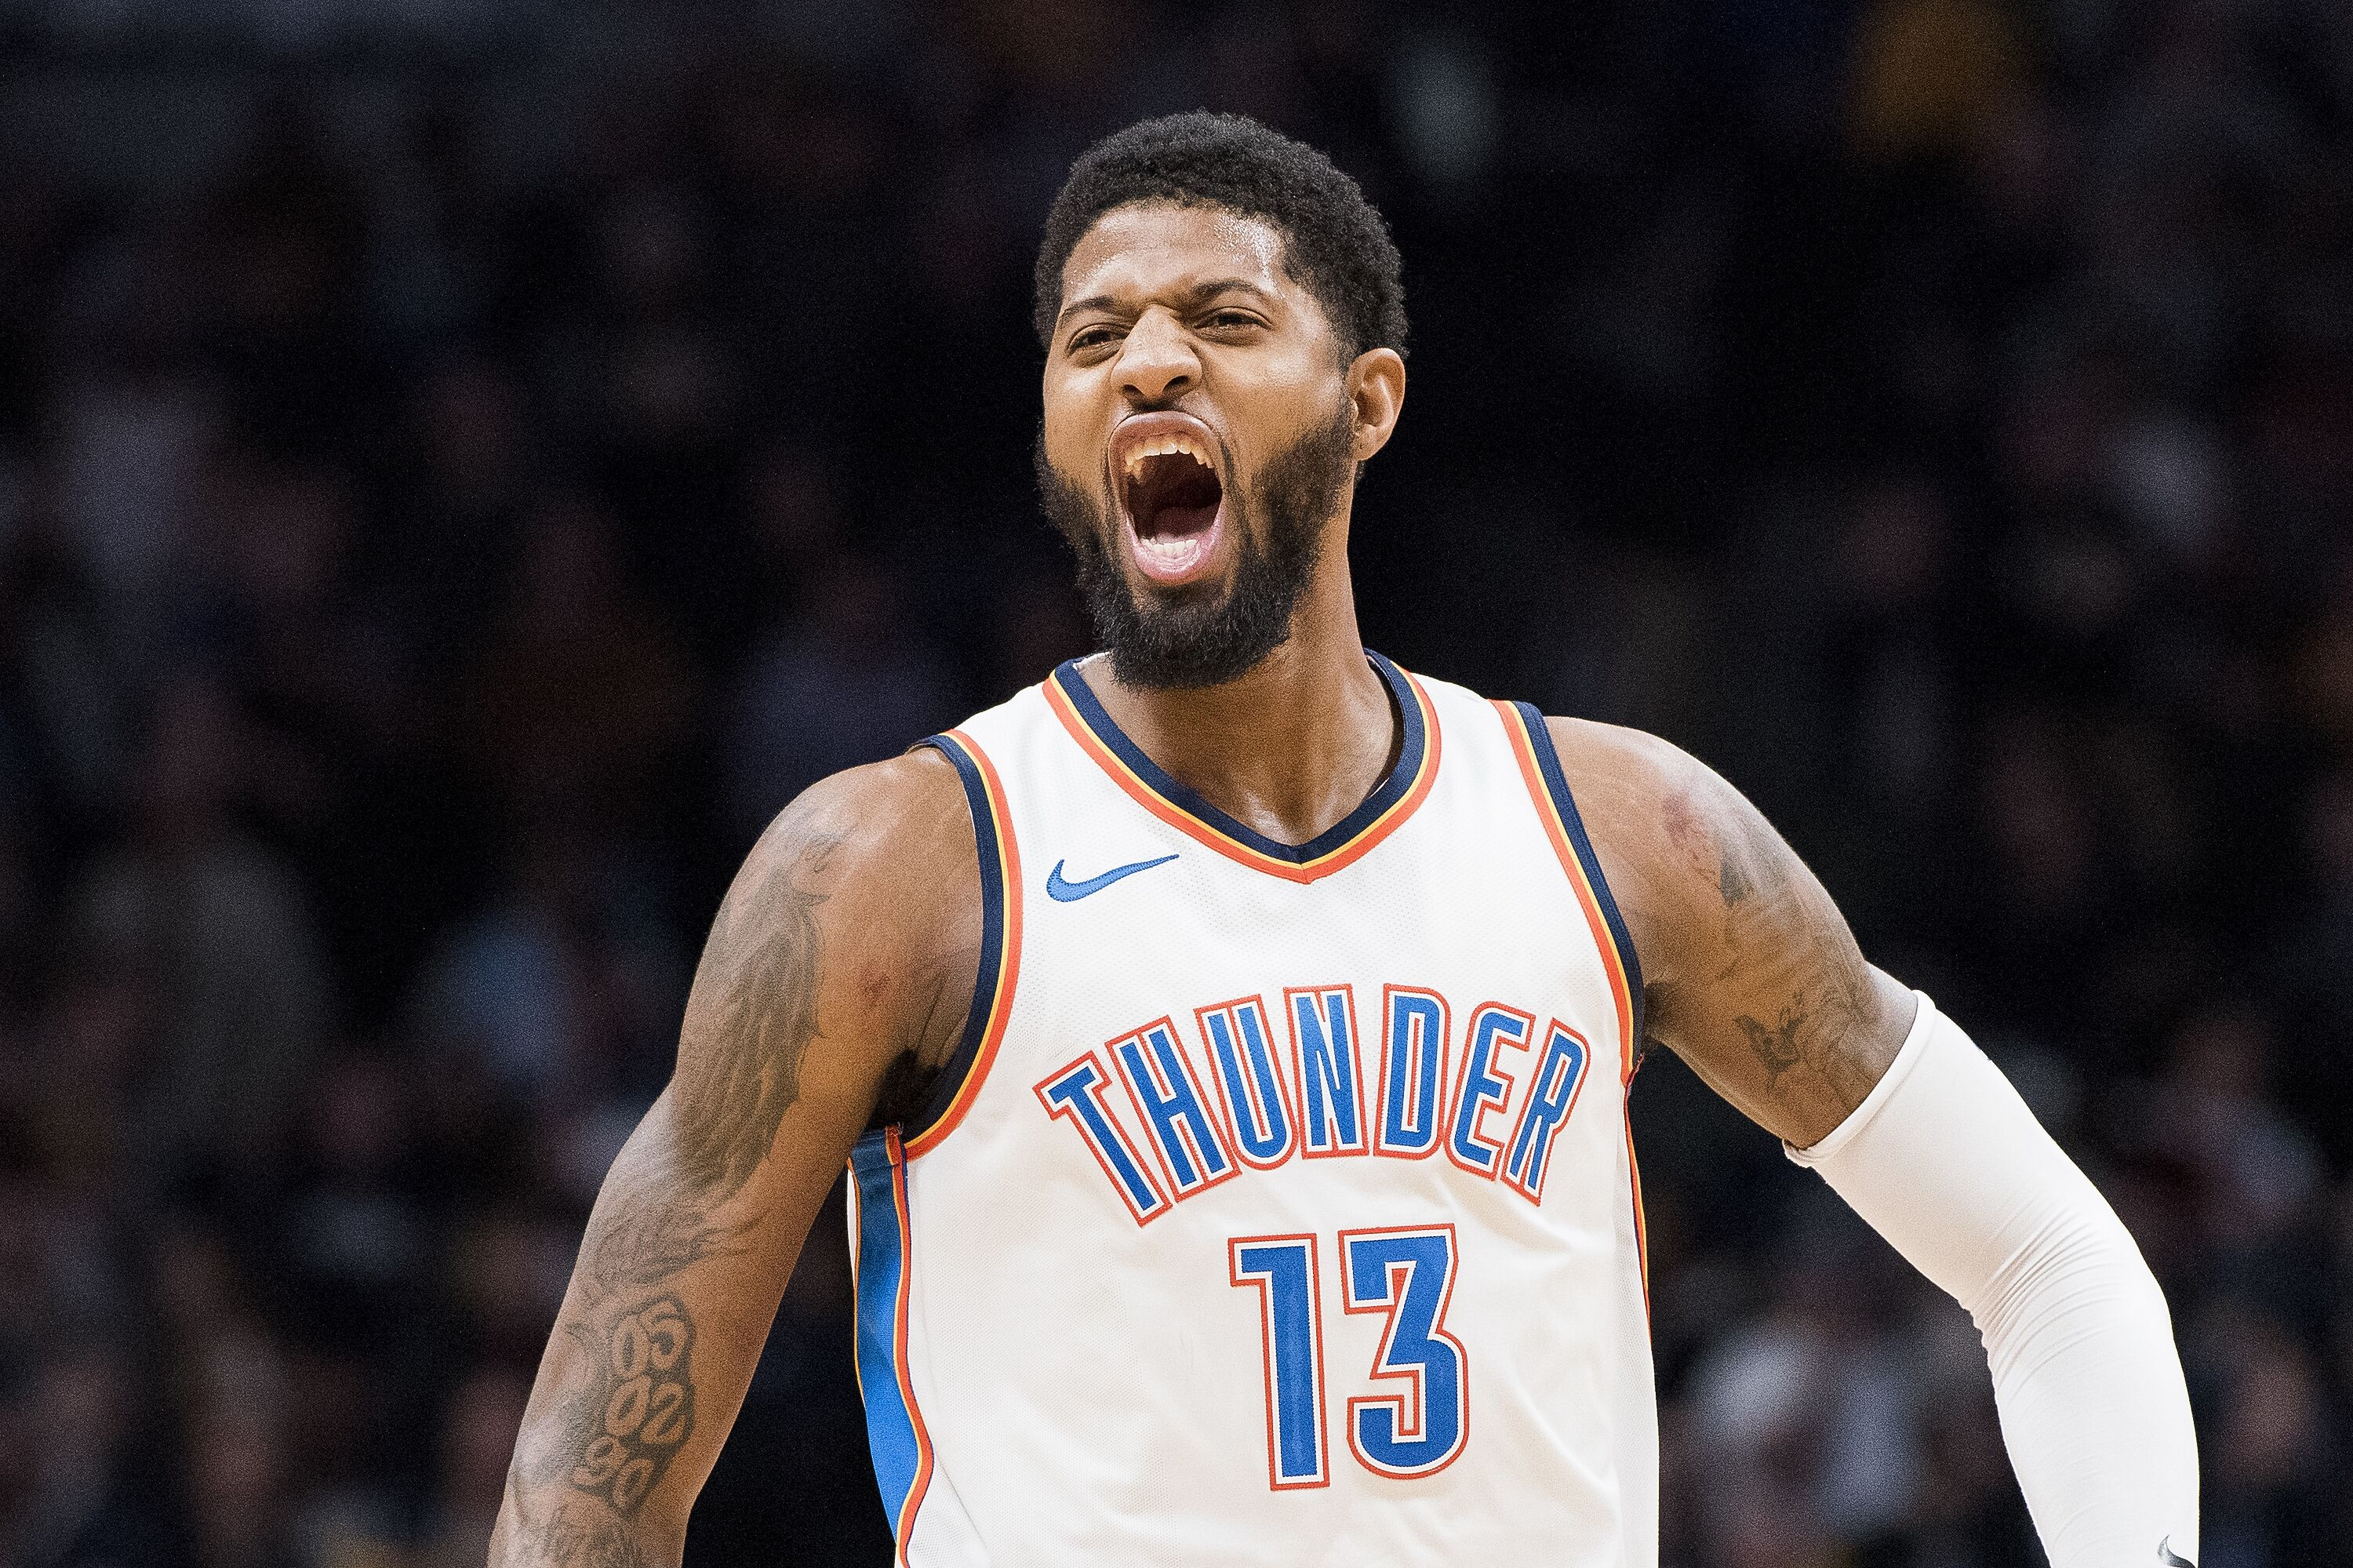 Paul George: Paul George's Chances Of Re-signing With OKC Thunder